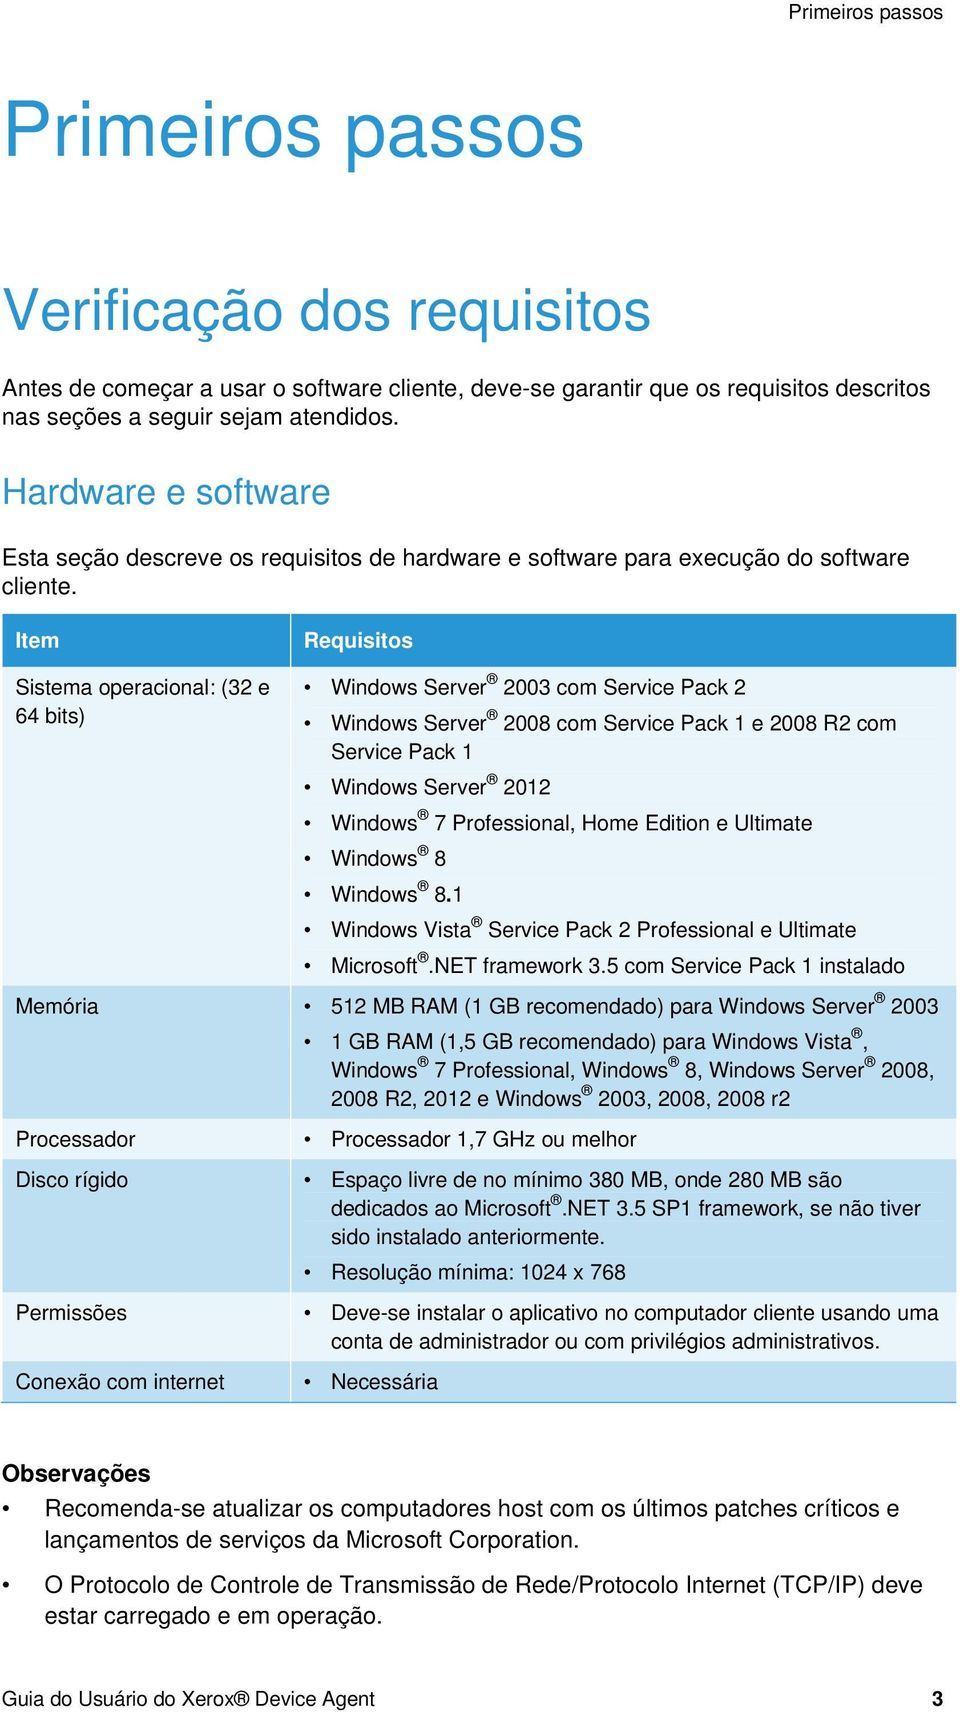 Item Sistema operacional: (32 e 64 bits) Requisitos Windows Server 2003 com Service Pack 2 Windows Server 2008 com Service Pack 1 e 2008 R2 com Service Pack 1 Windows Server 2012 Windows 7